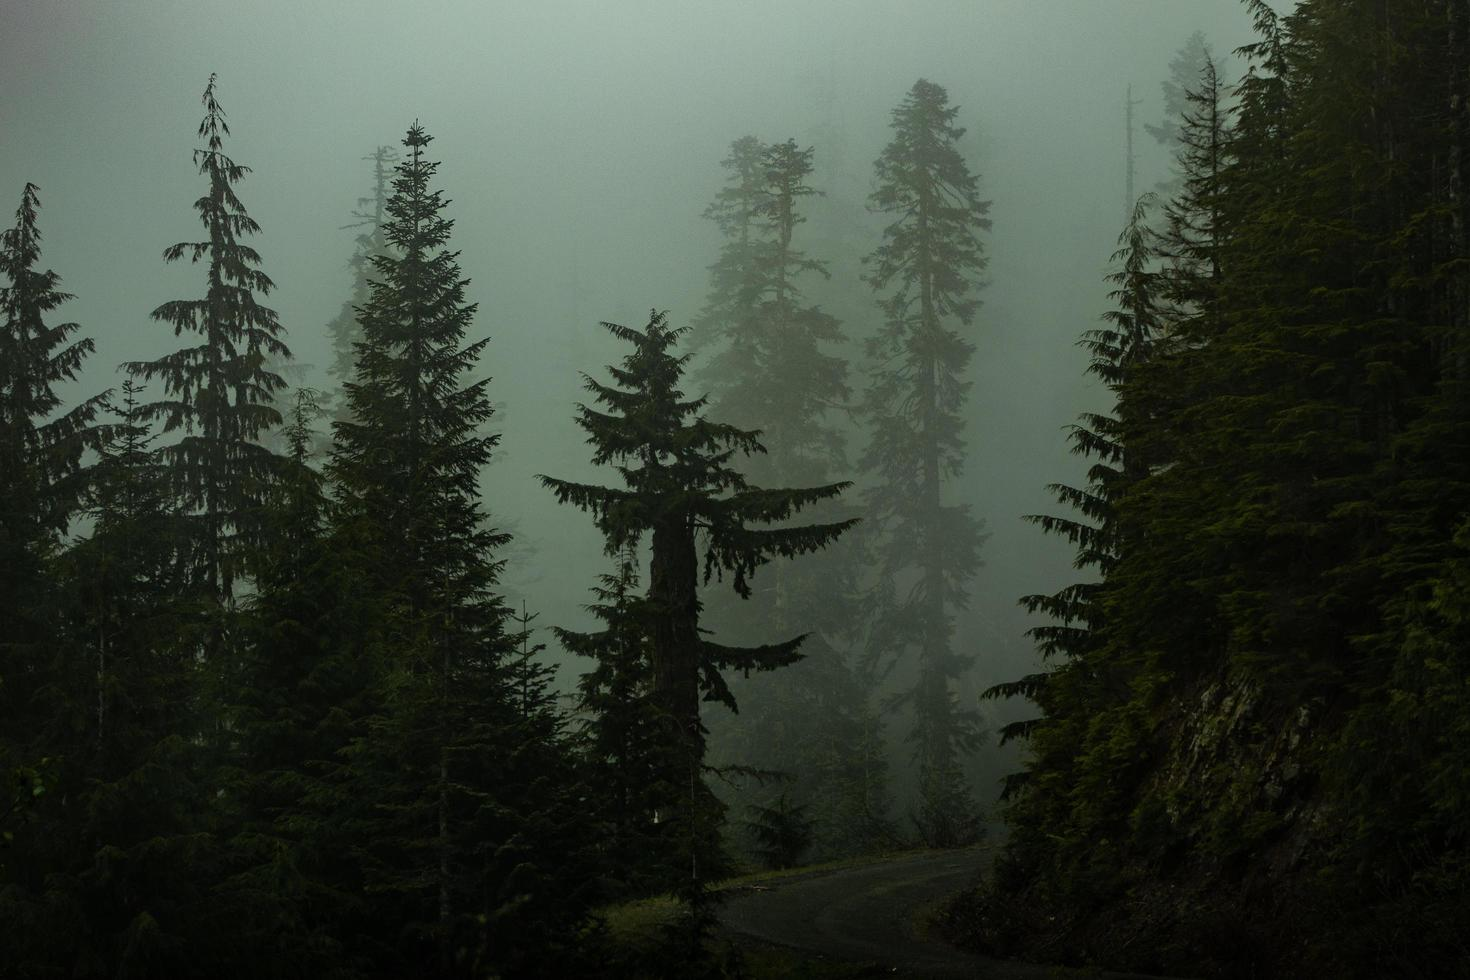 Pine trees in a dark foggy forest photo